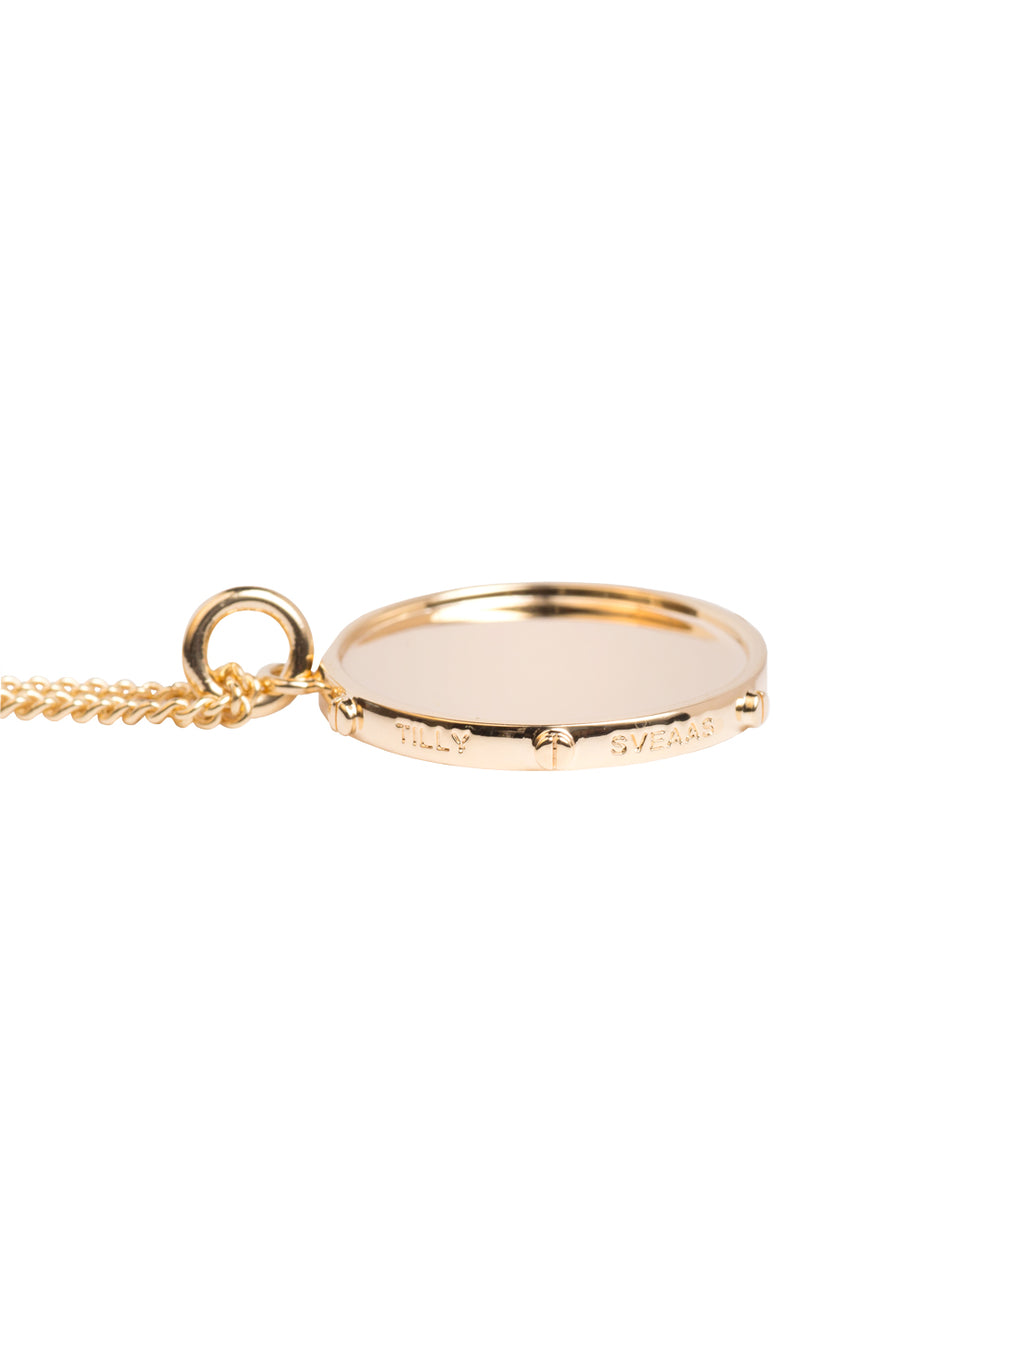 TILLY SVEAAS MEDIUM GOLD DISC ON CURB CHAIN NECKLACE